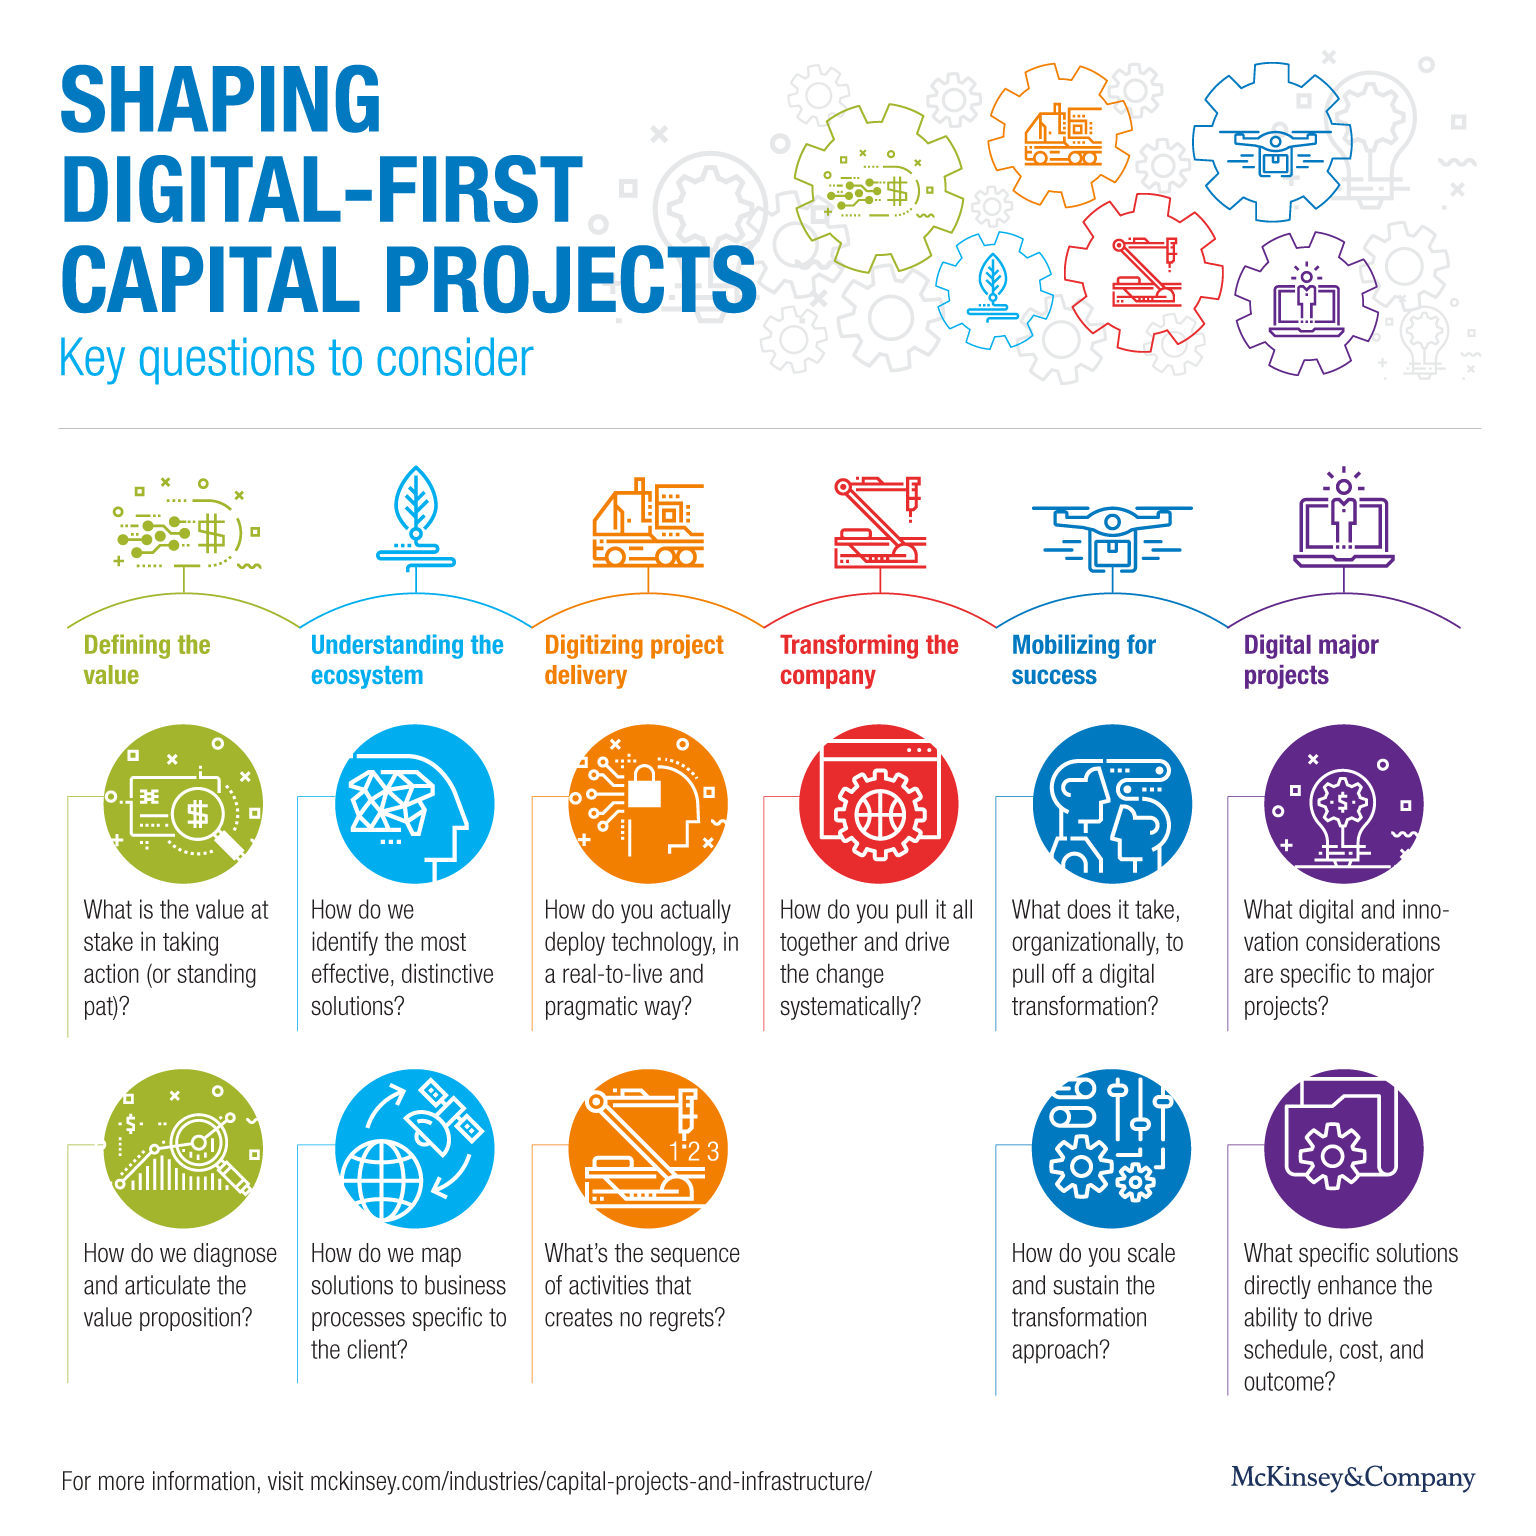 Shaping digital-first capital projects: Key questions to